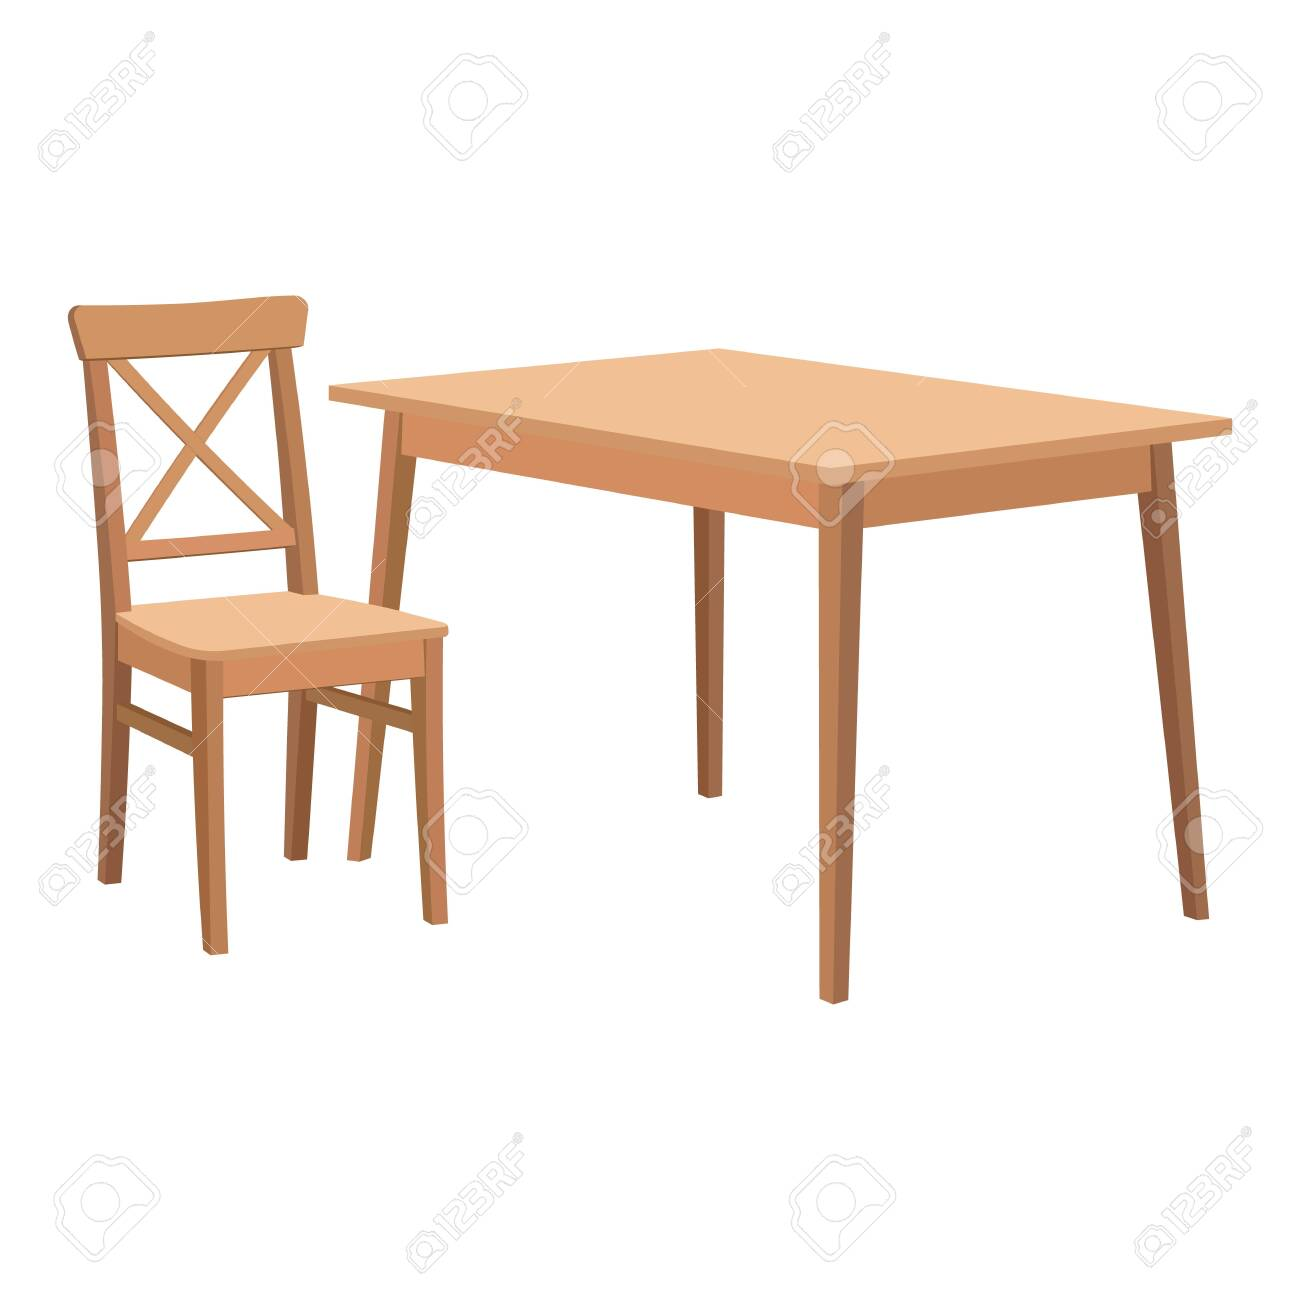 Wooden Table And Chair Royalty Free Cliparts Vectors And Stock Illustration Image 128502180